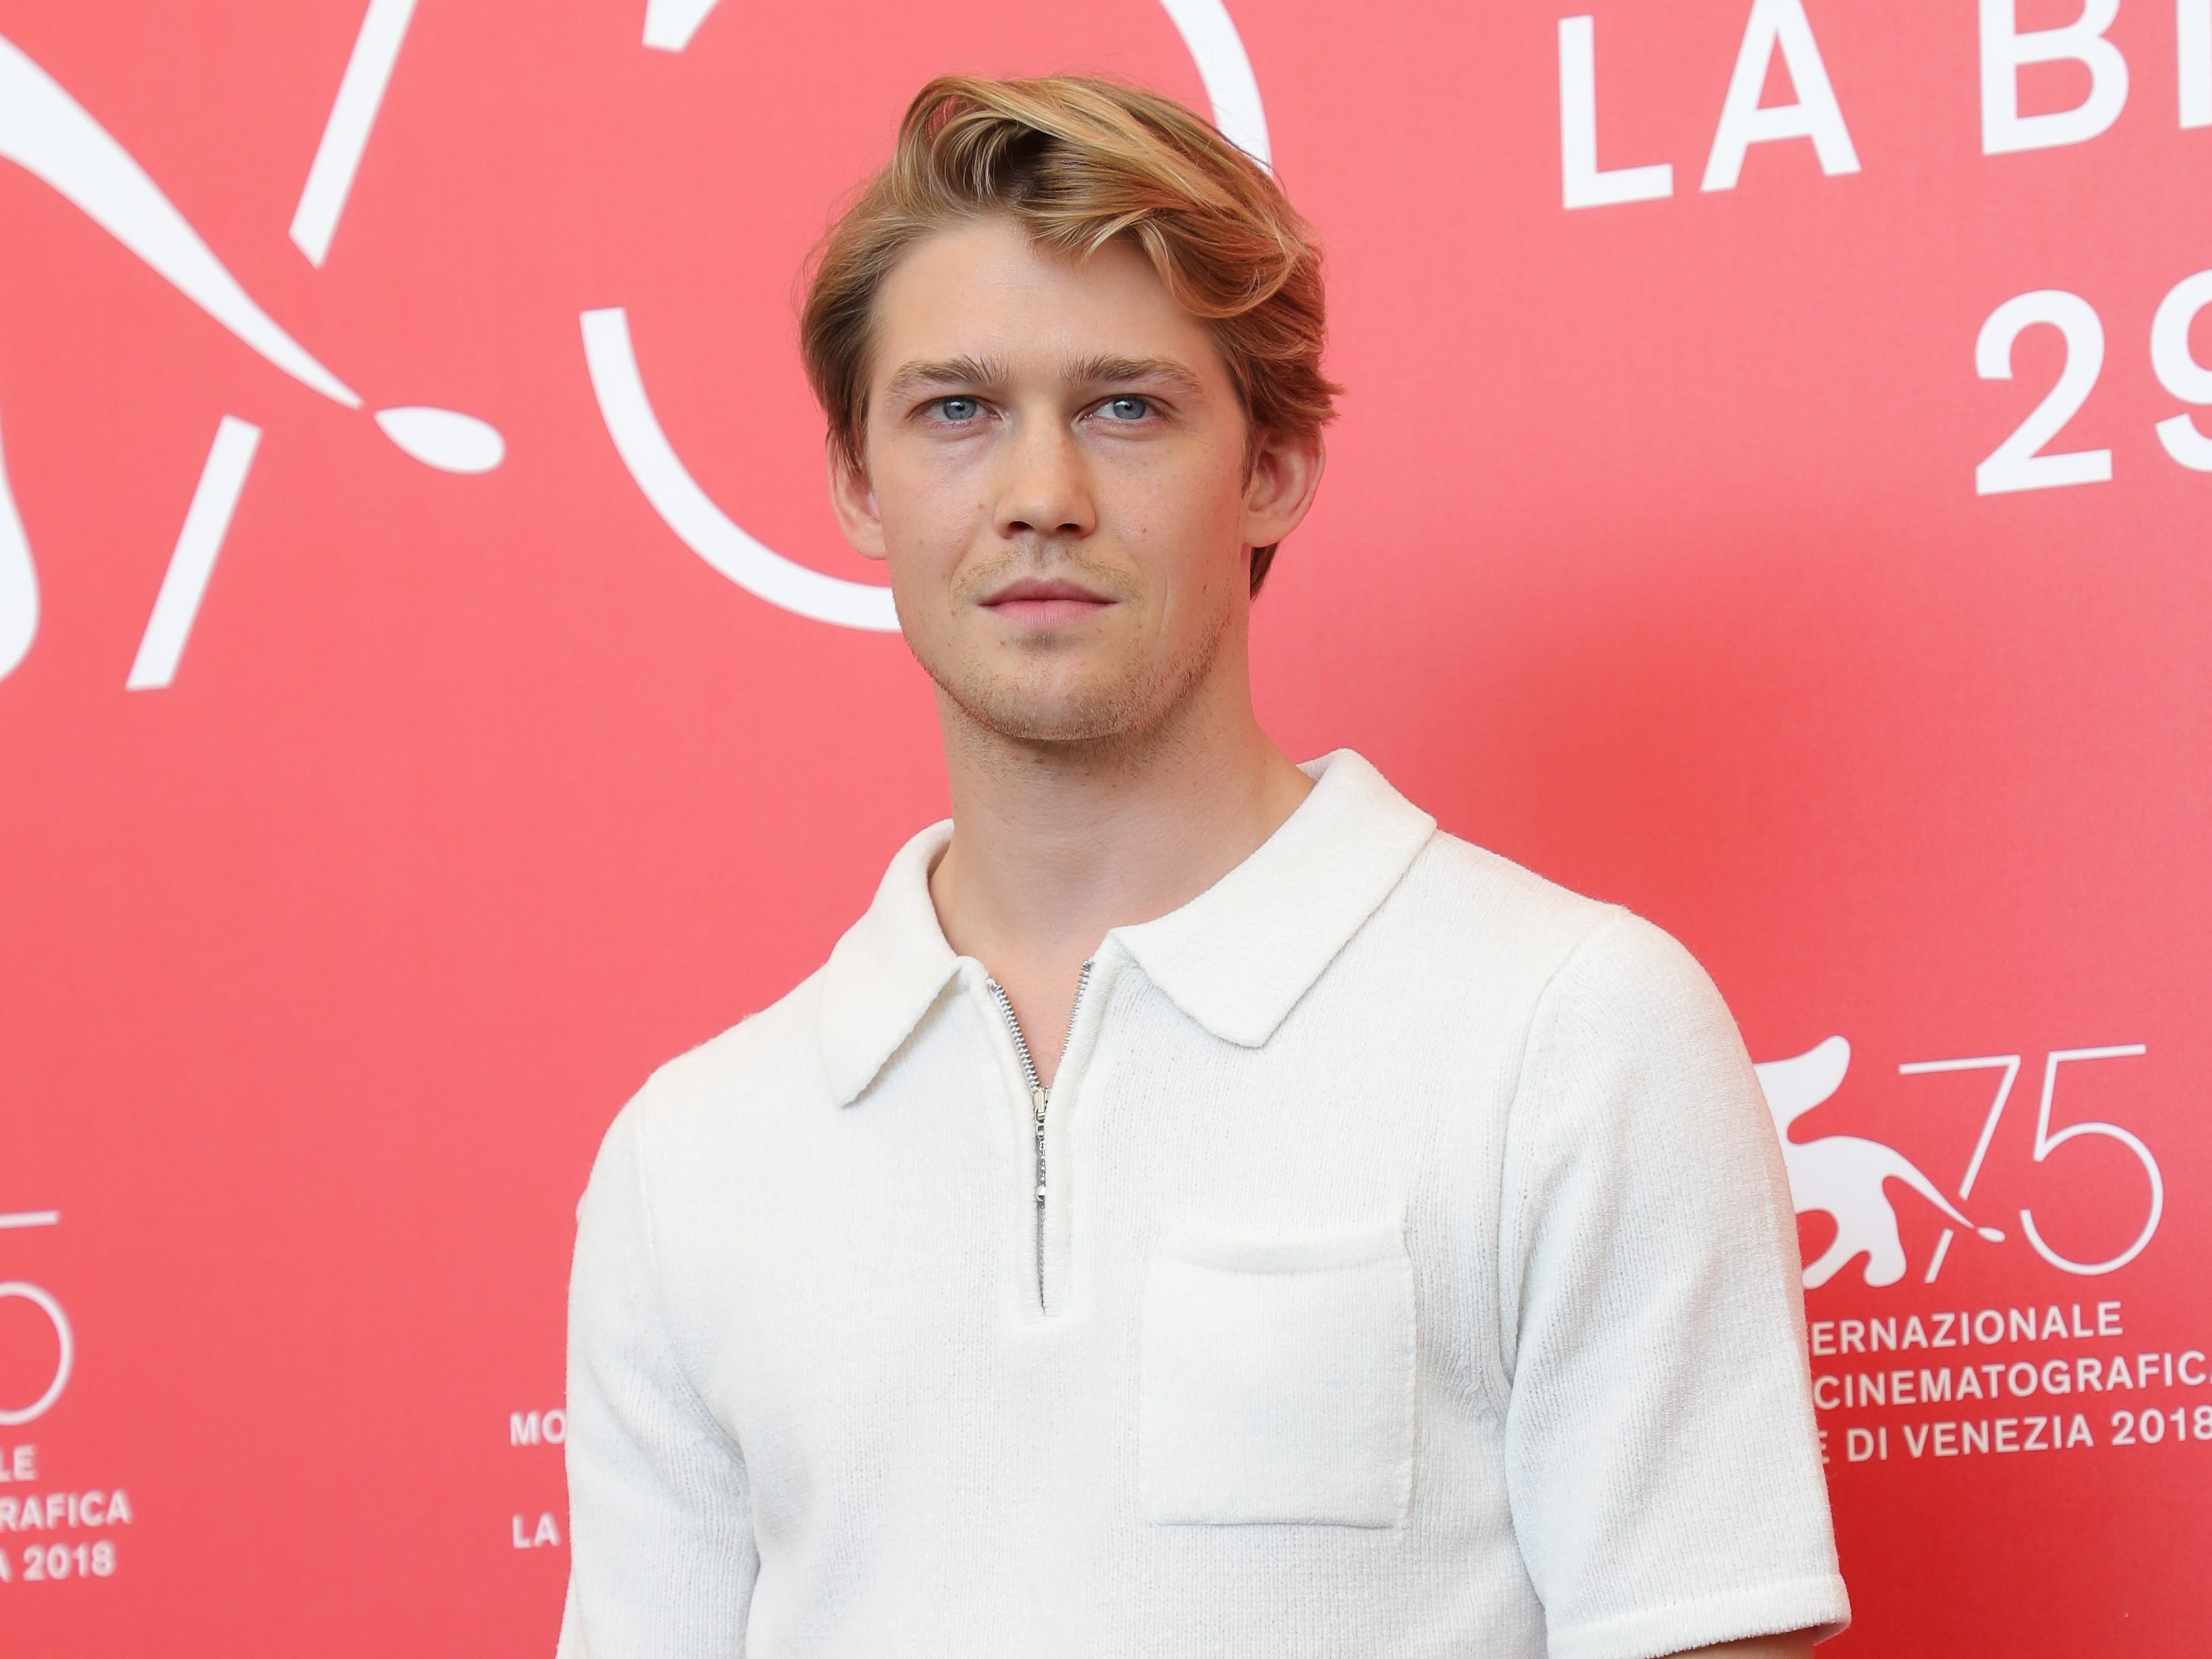 VENICE, ITALY - AUGUST 30:  Joe Alwyn attends 'The Favourite' photocall during the 75th Venice Film Festival at Sala Casino on August 30, 2018 in Venice, Italy.  (Photo by Vittorio Zunino Celotto/Getty Images) ORG XMIT: 775200657 ORIG FILE ID: 1025254644 x